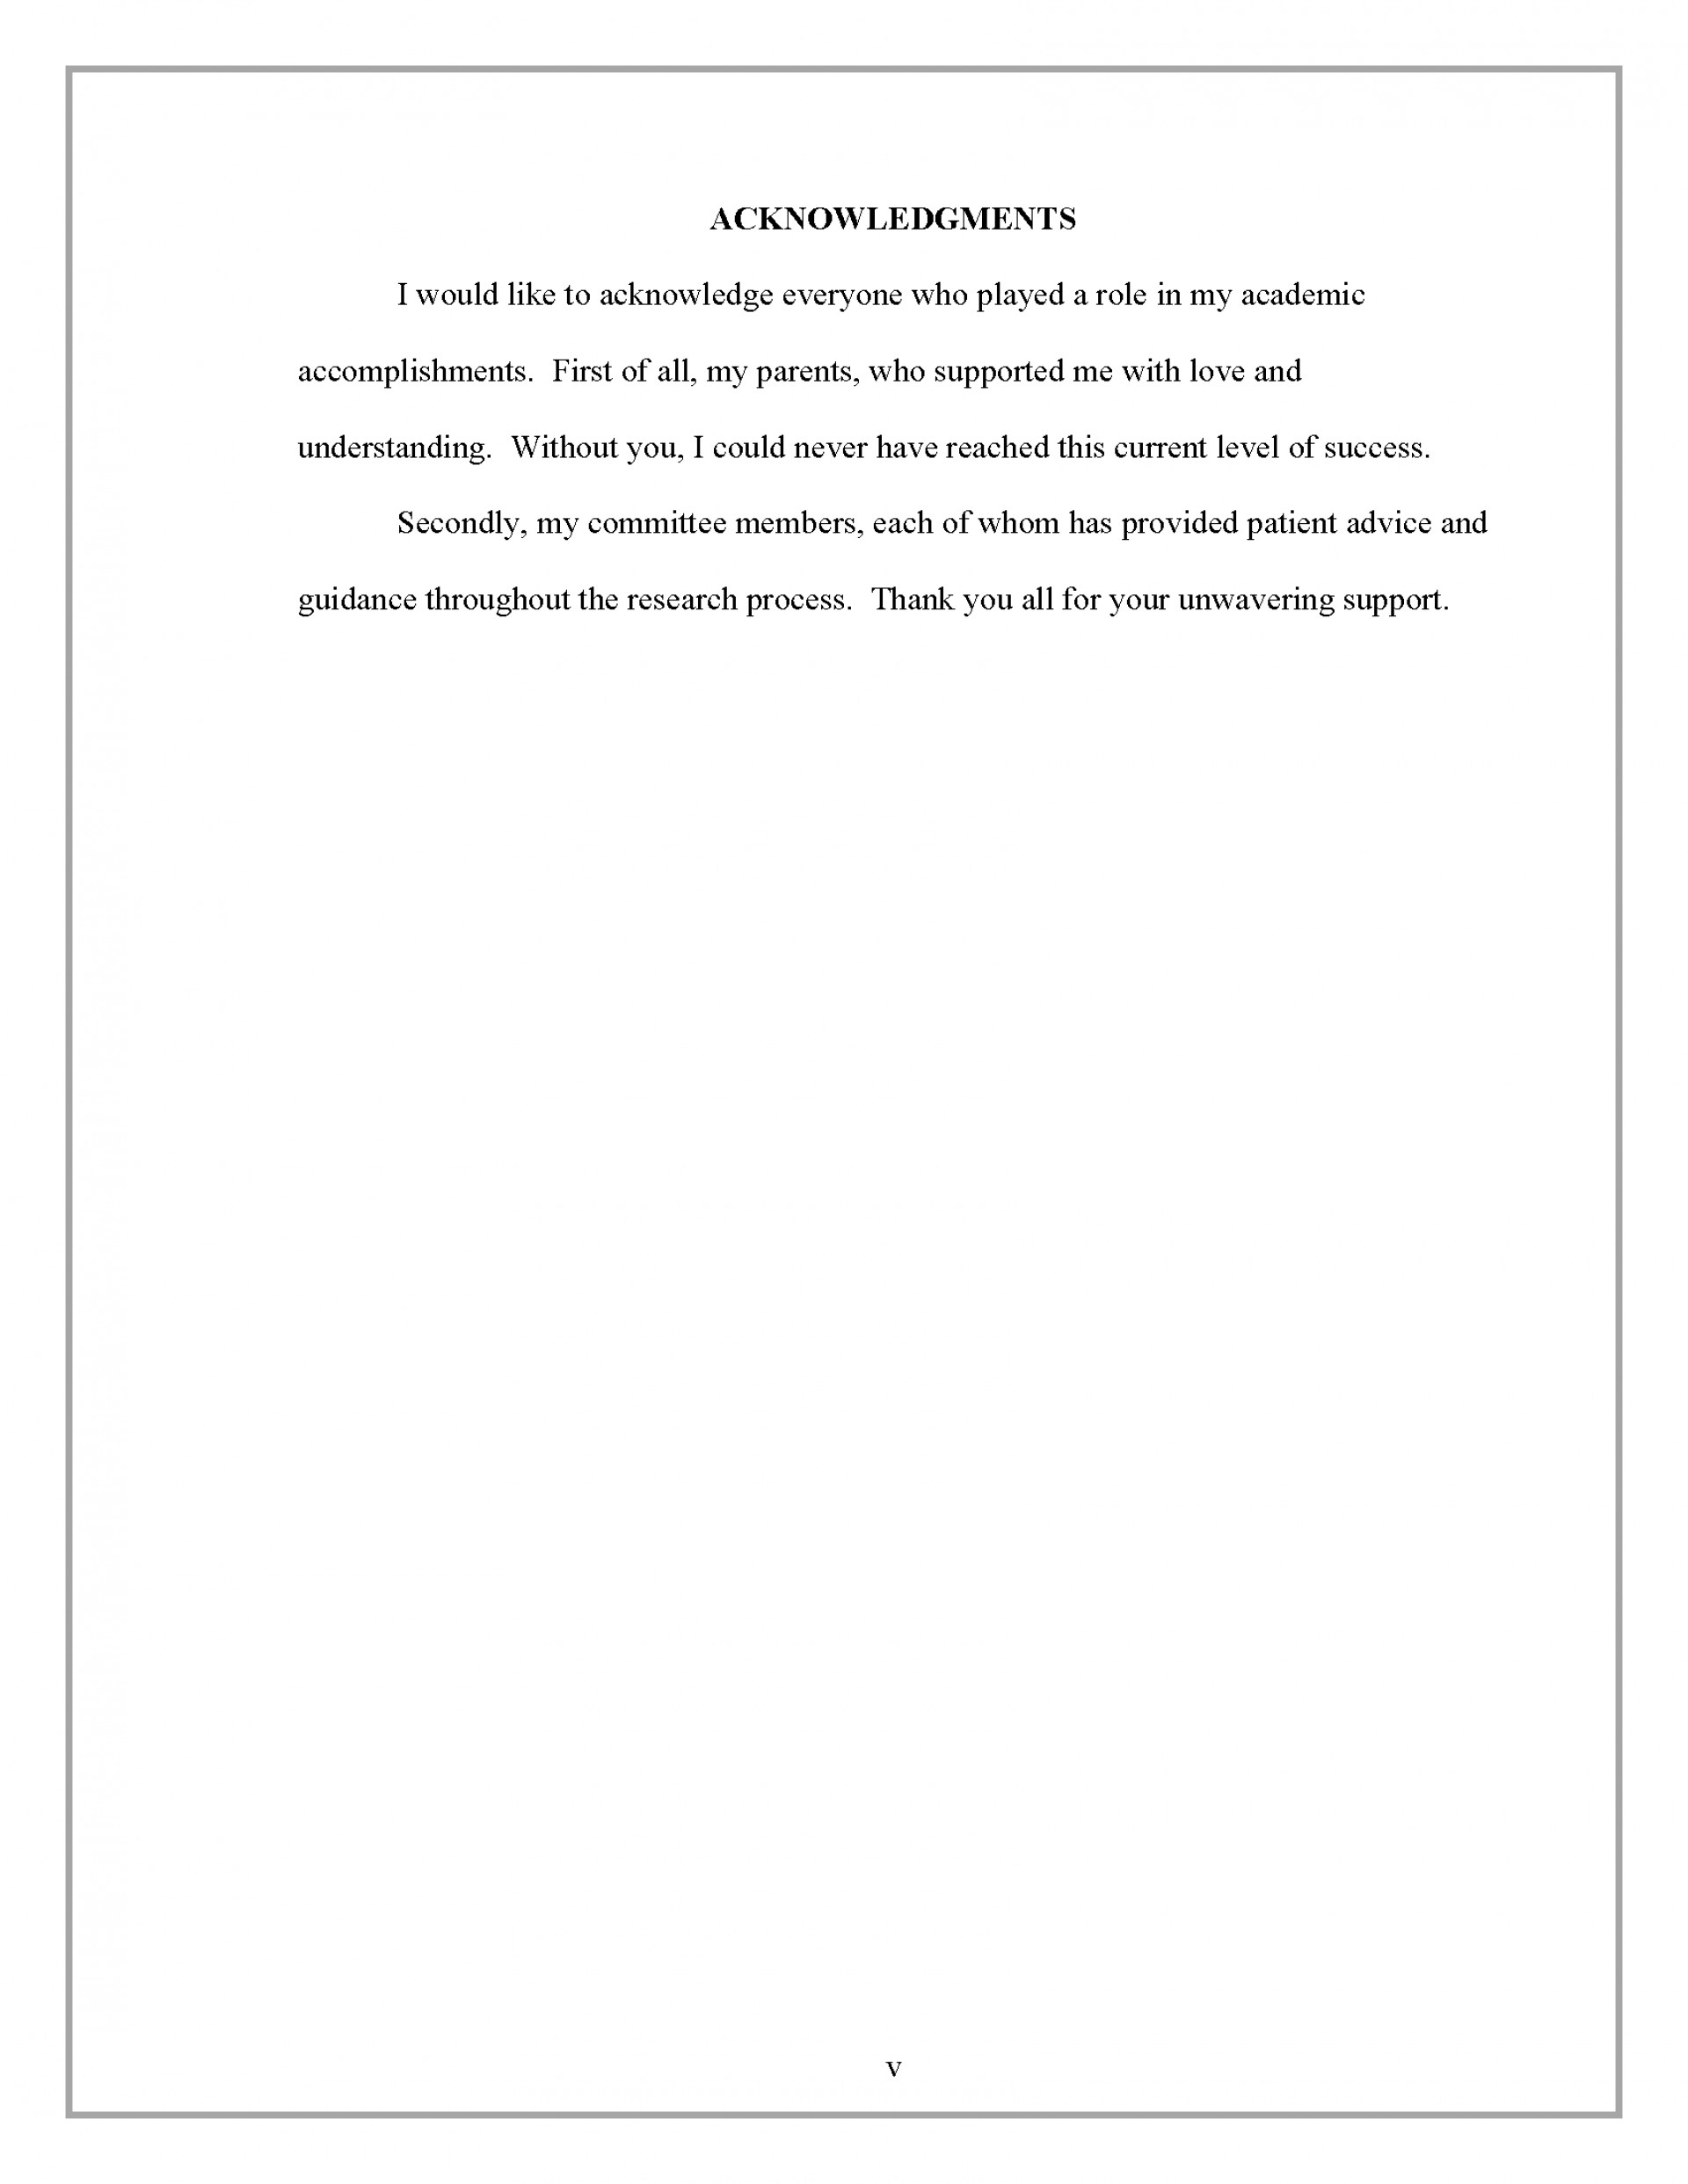 004 Acknowledgment Border Research Paper How To Write Acknowledgement In Rare Examples 1920